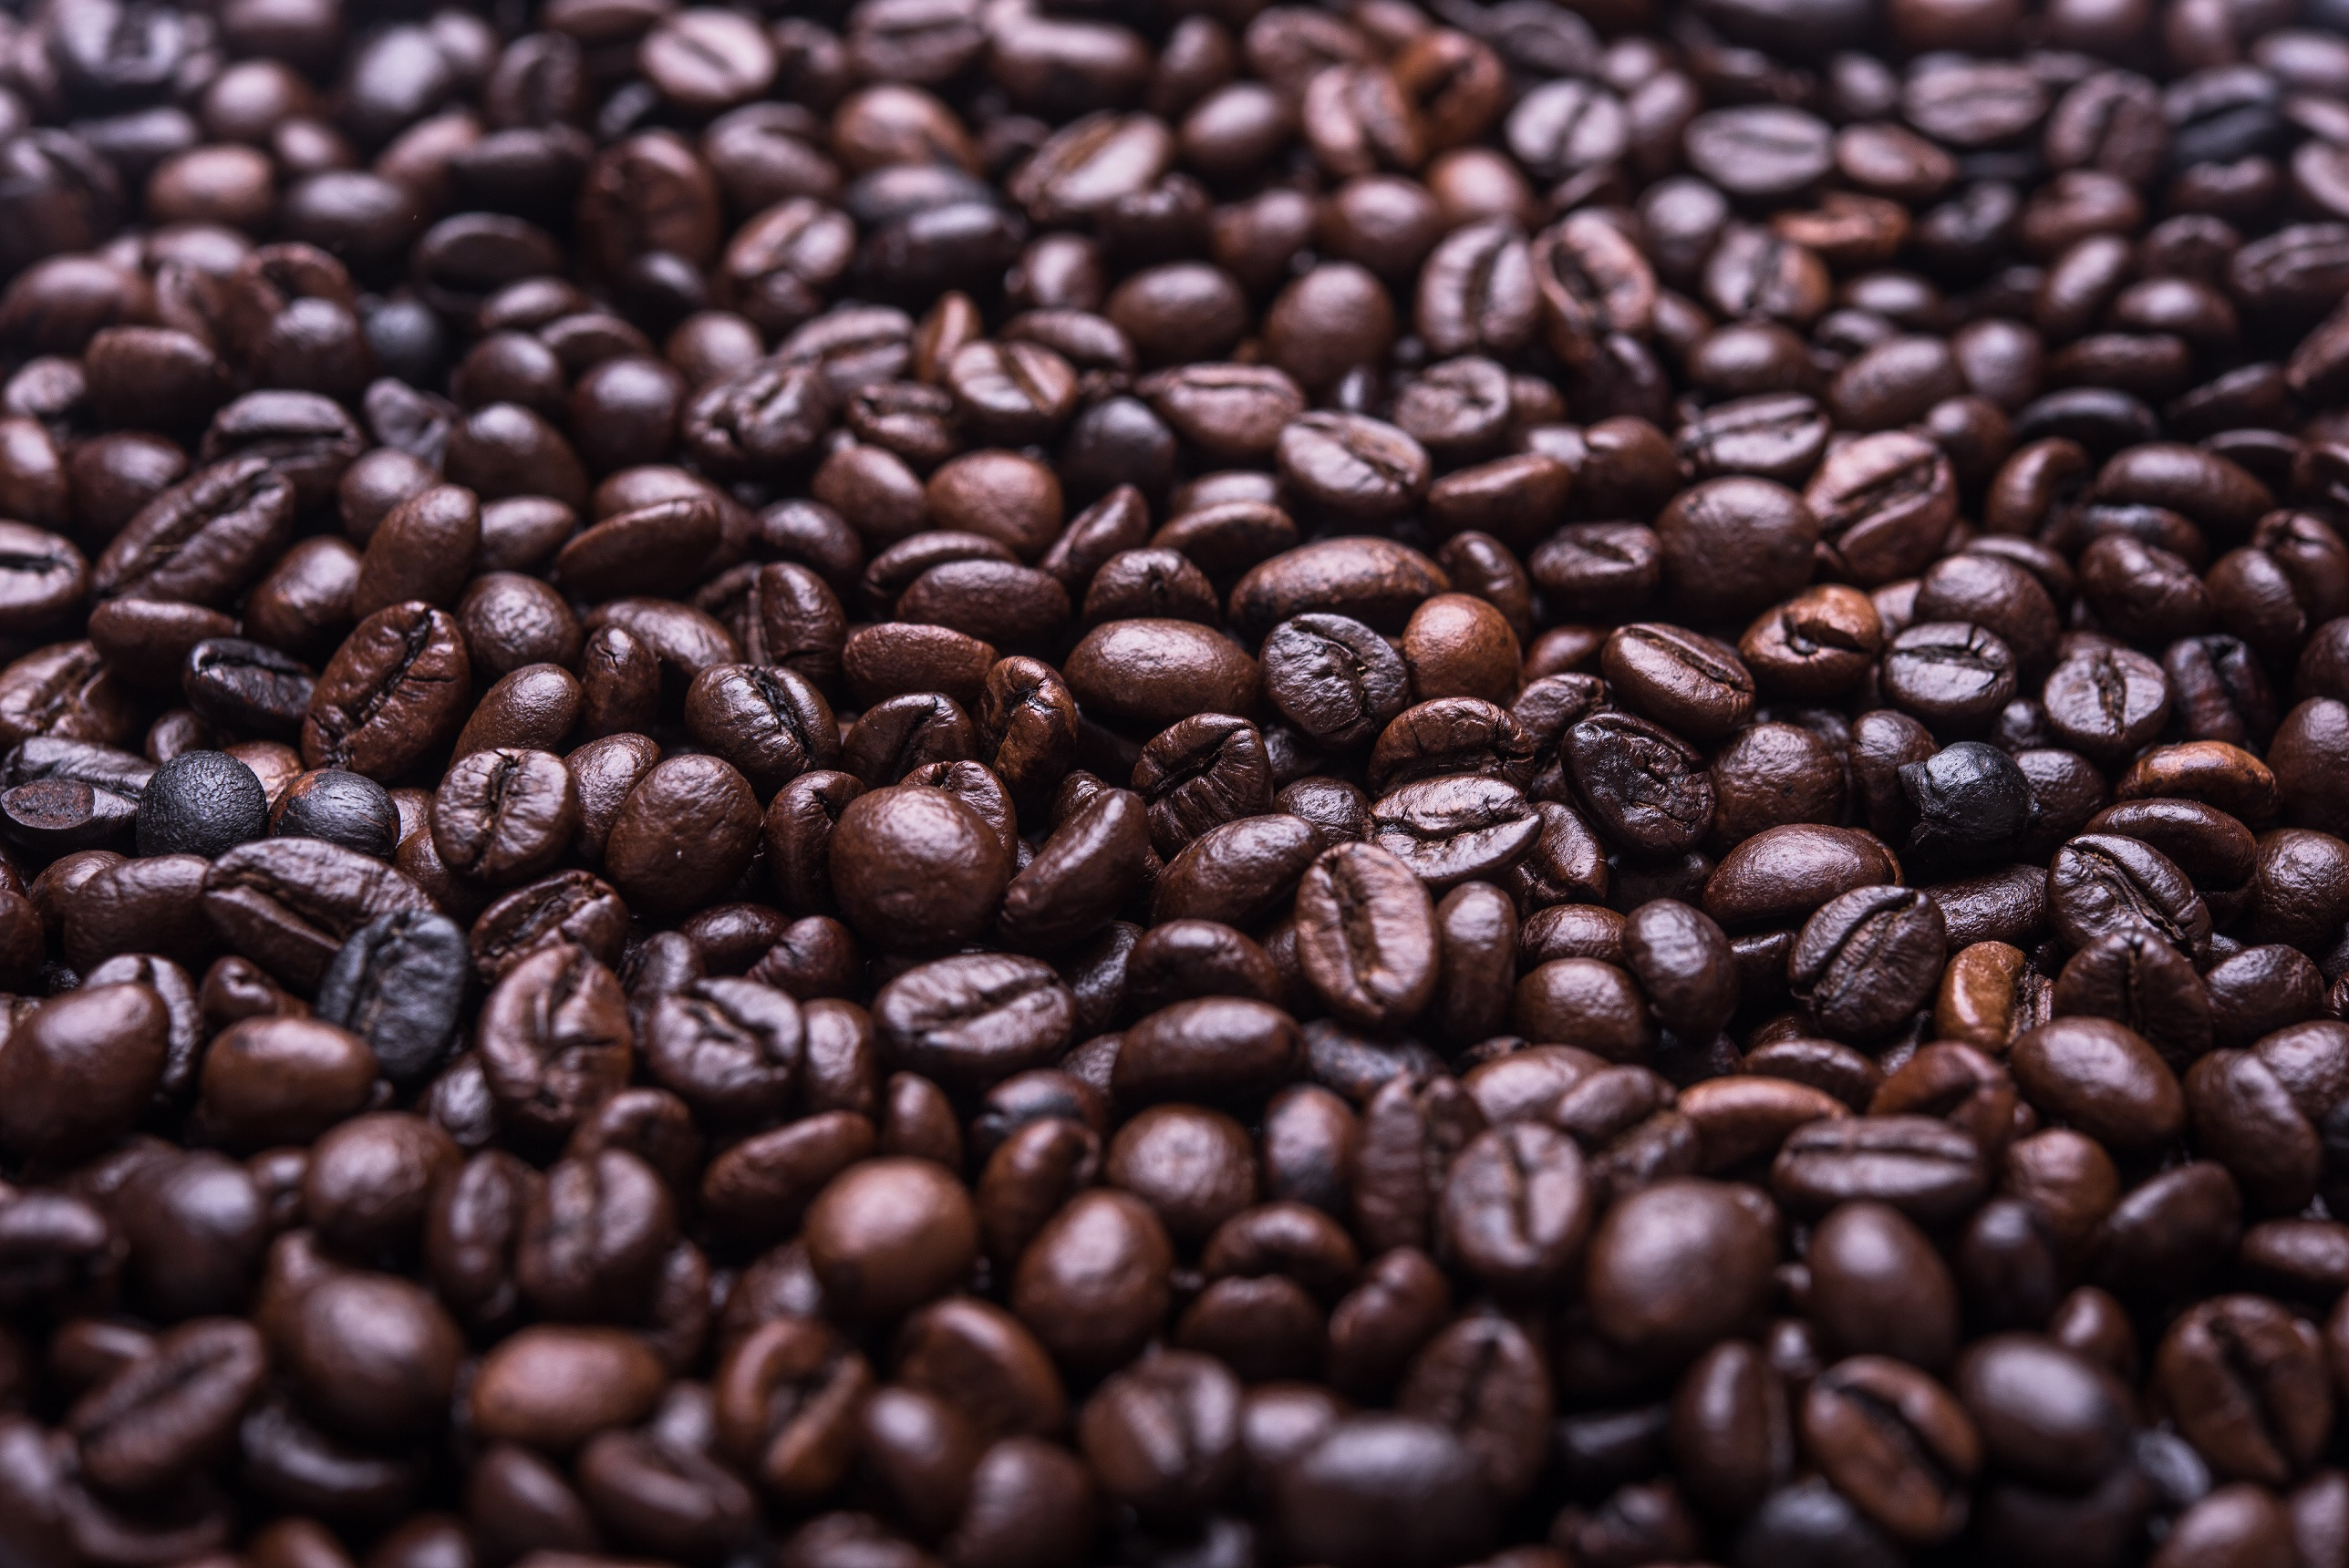 Recycling old coffee waste can help create environmentally friendly inks.